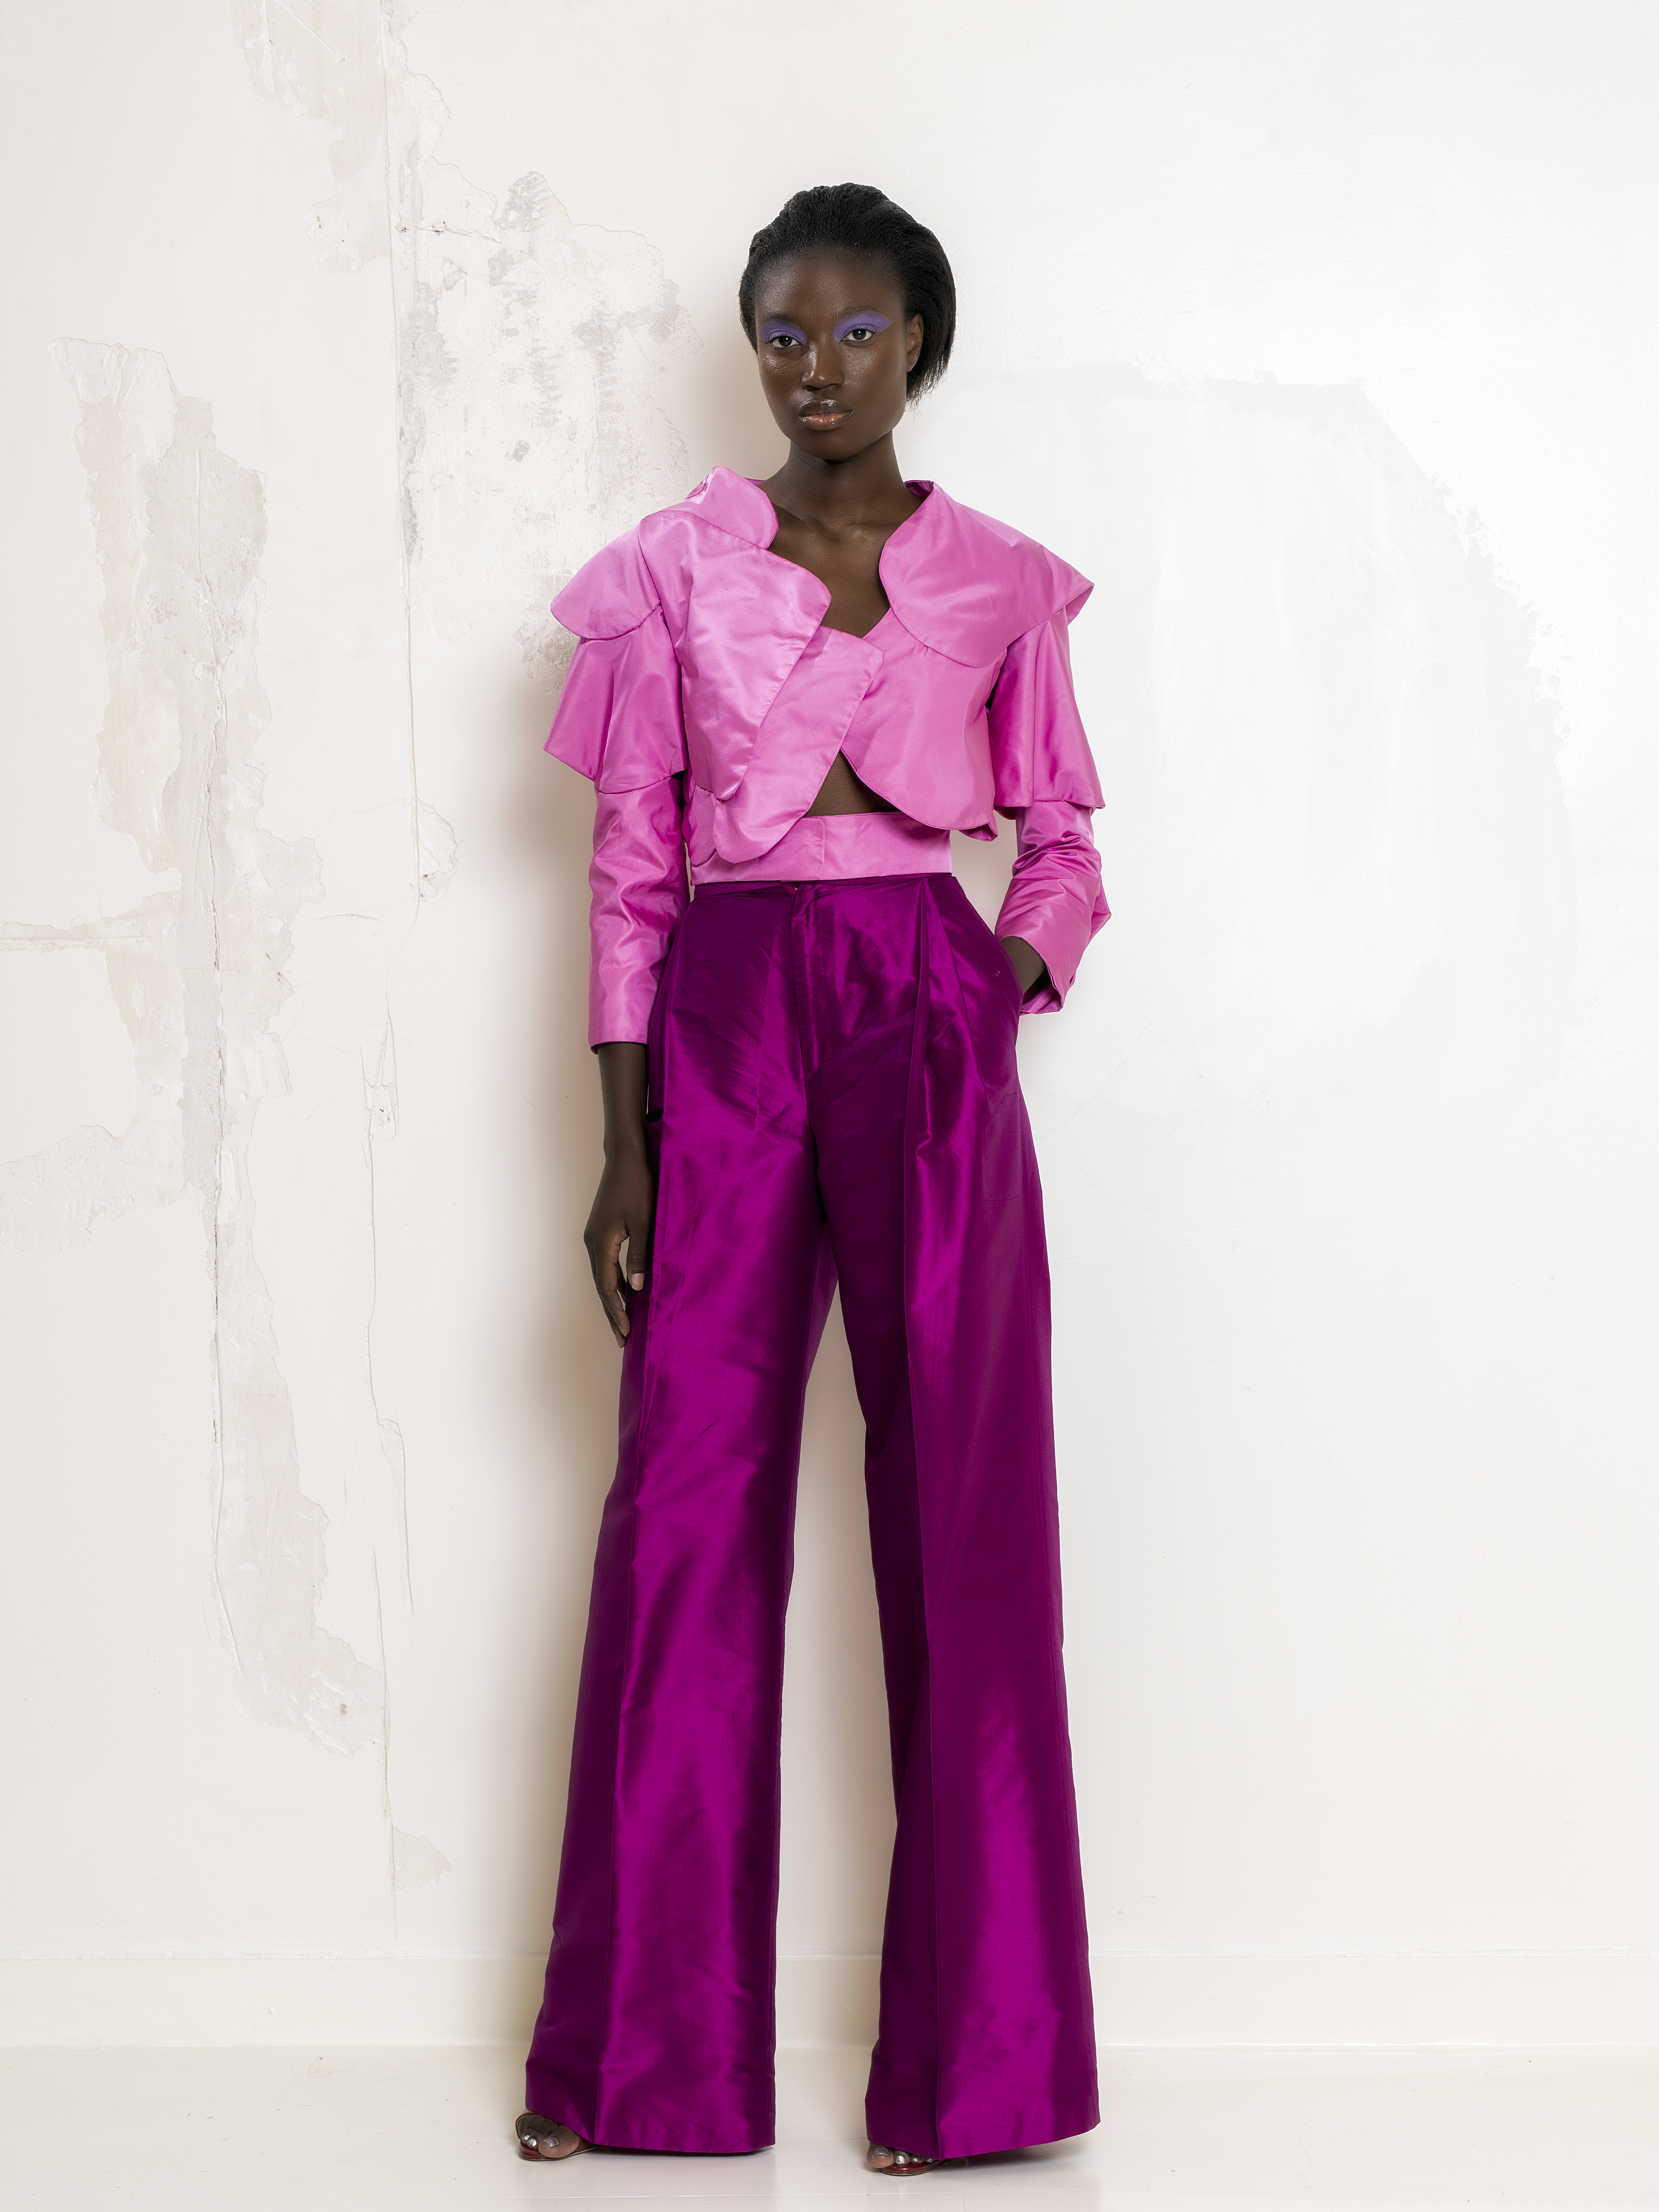 AW 20-21 Look 1